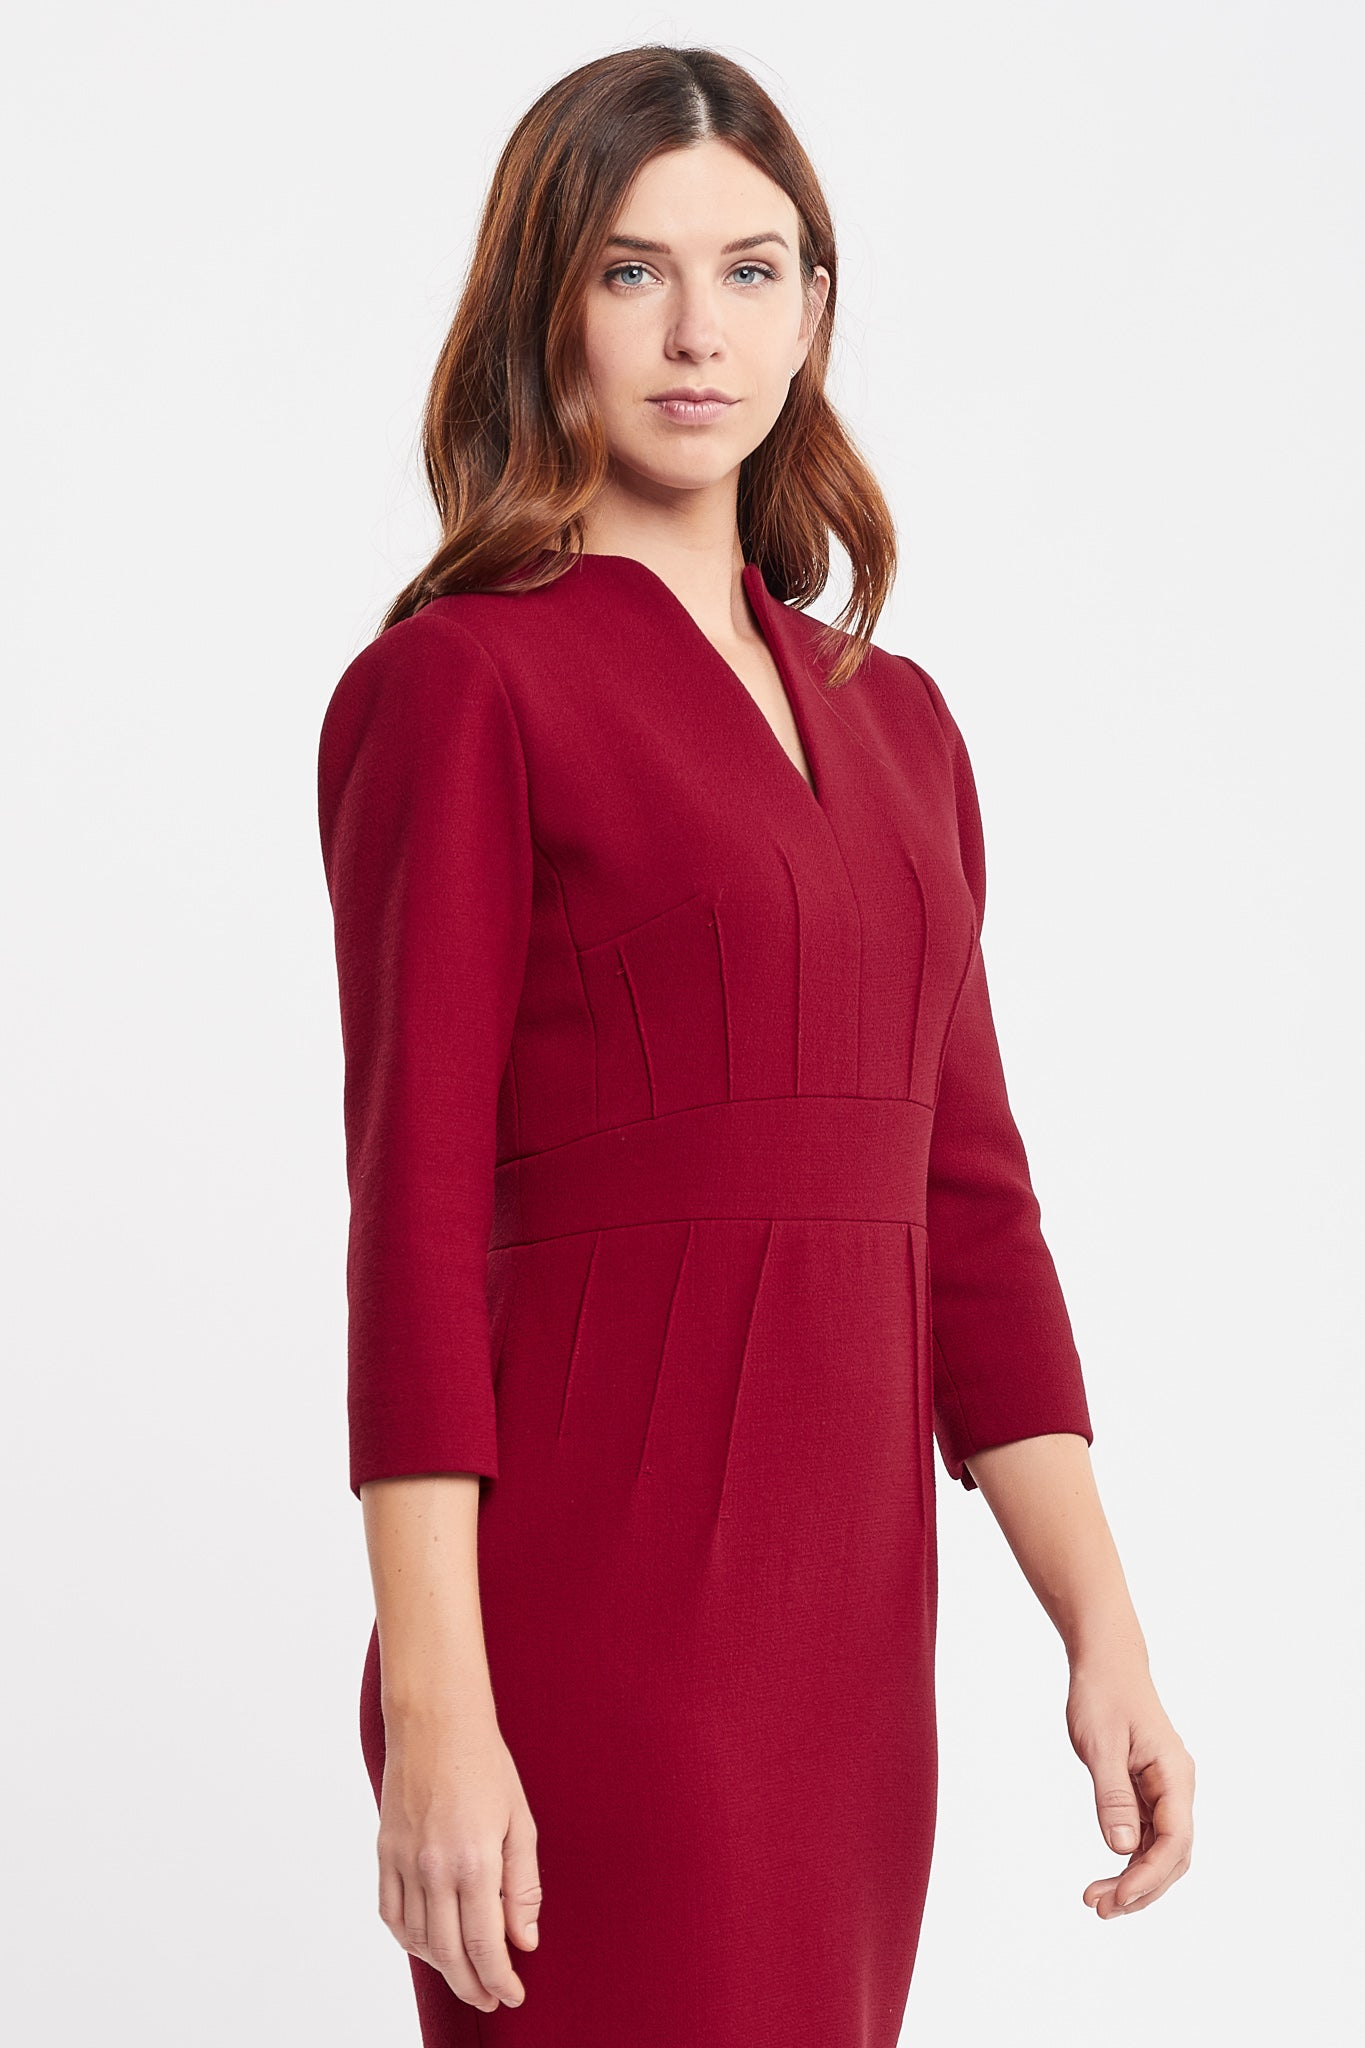 Dalila 3/4 Sleeves Sheath rust Work and Cocktail Dress